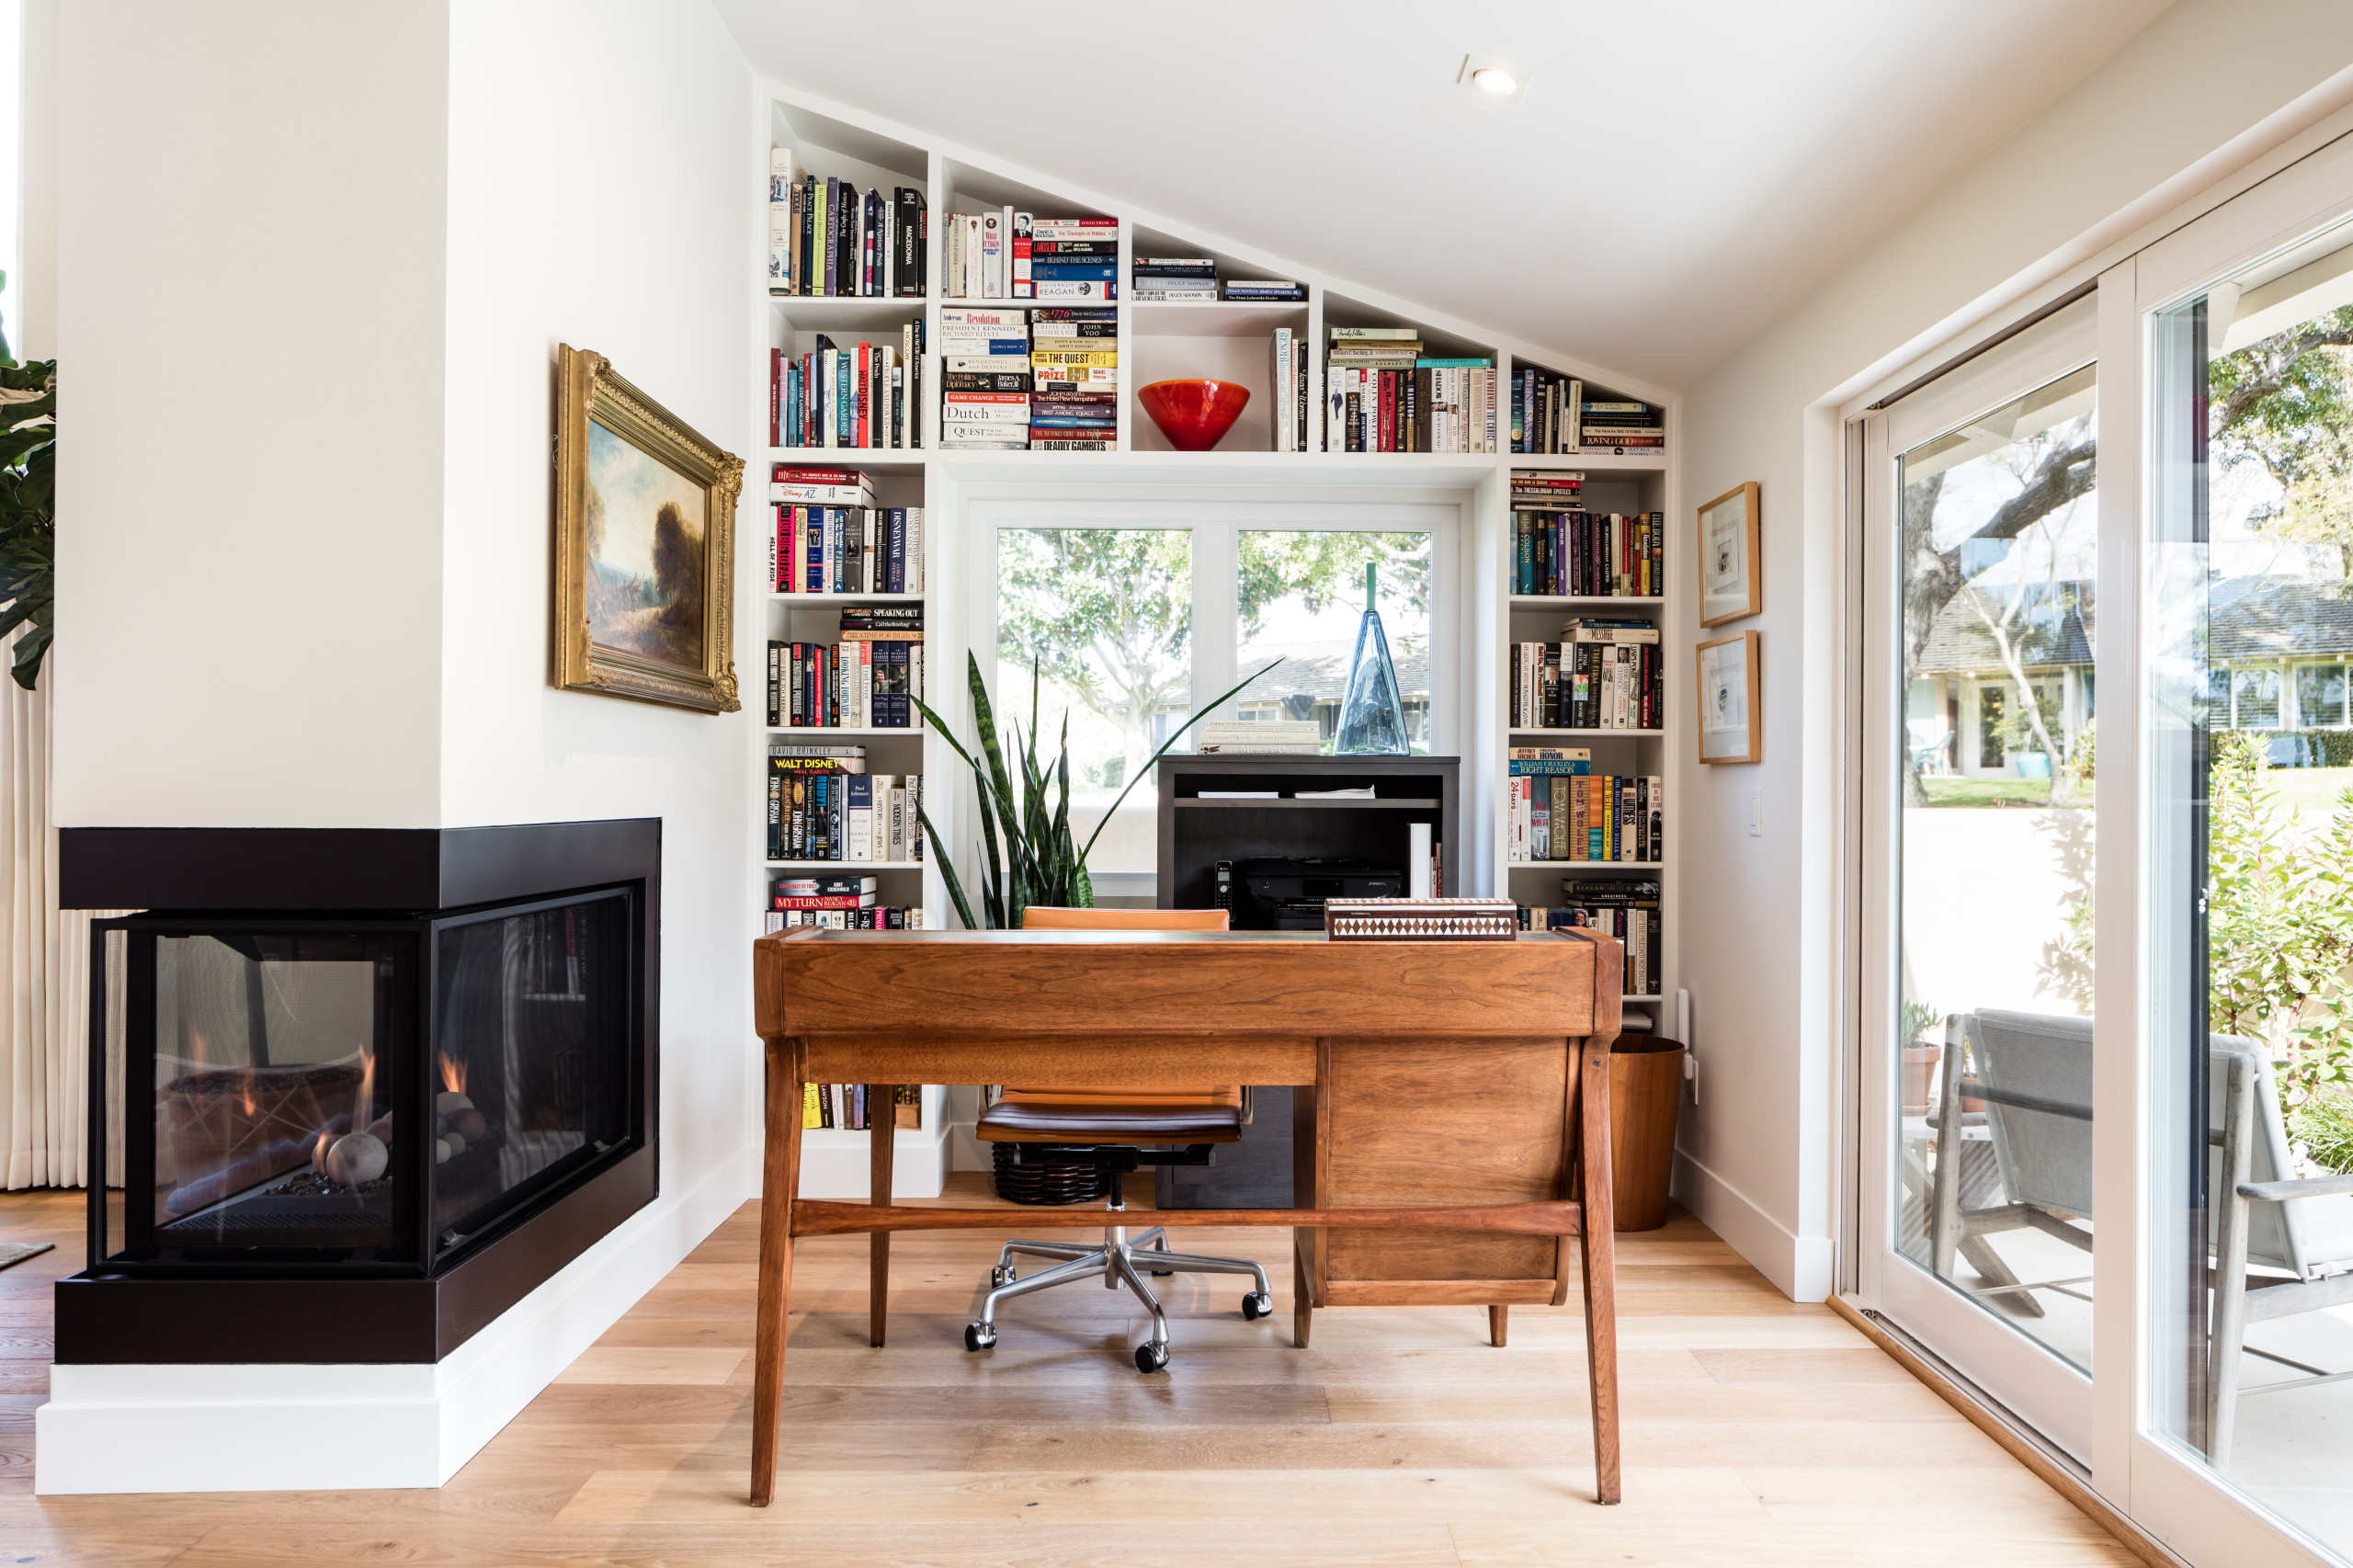 18 Beautiful Home Office Pictures Ideas October 2020 Houzz,Colors That Go Well With Red And White